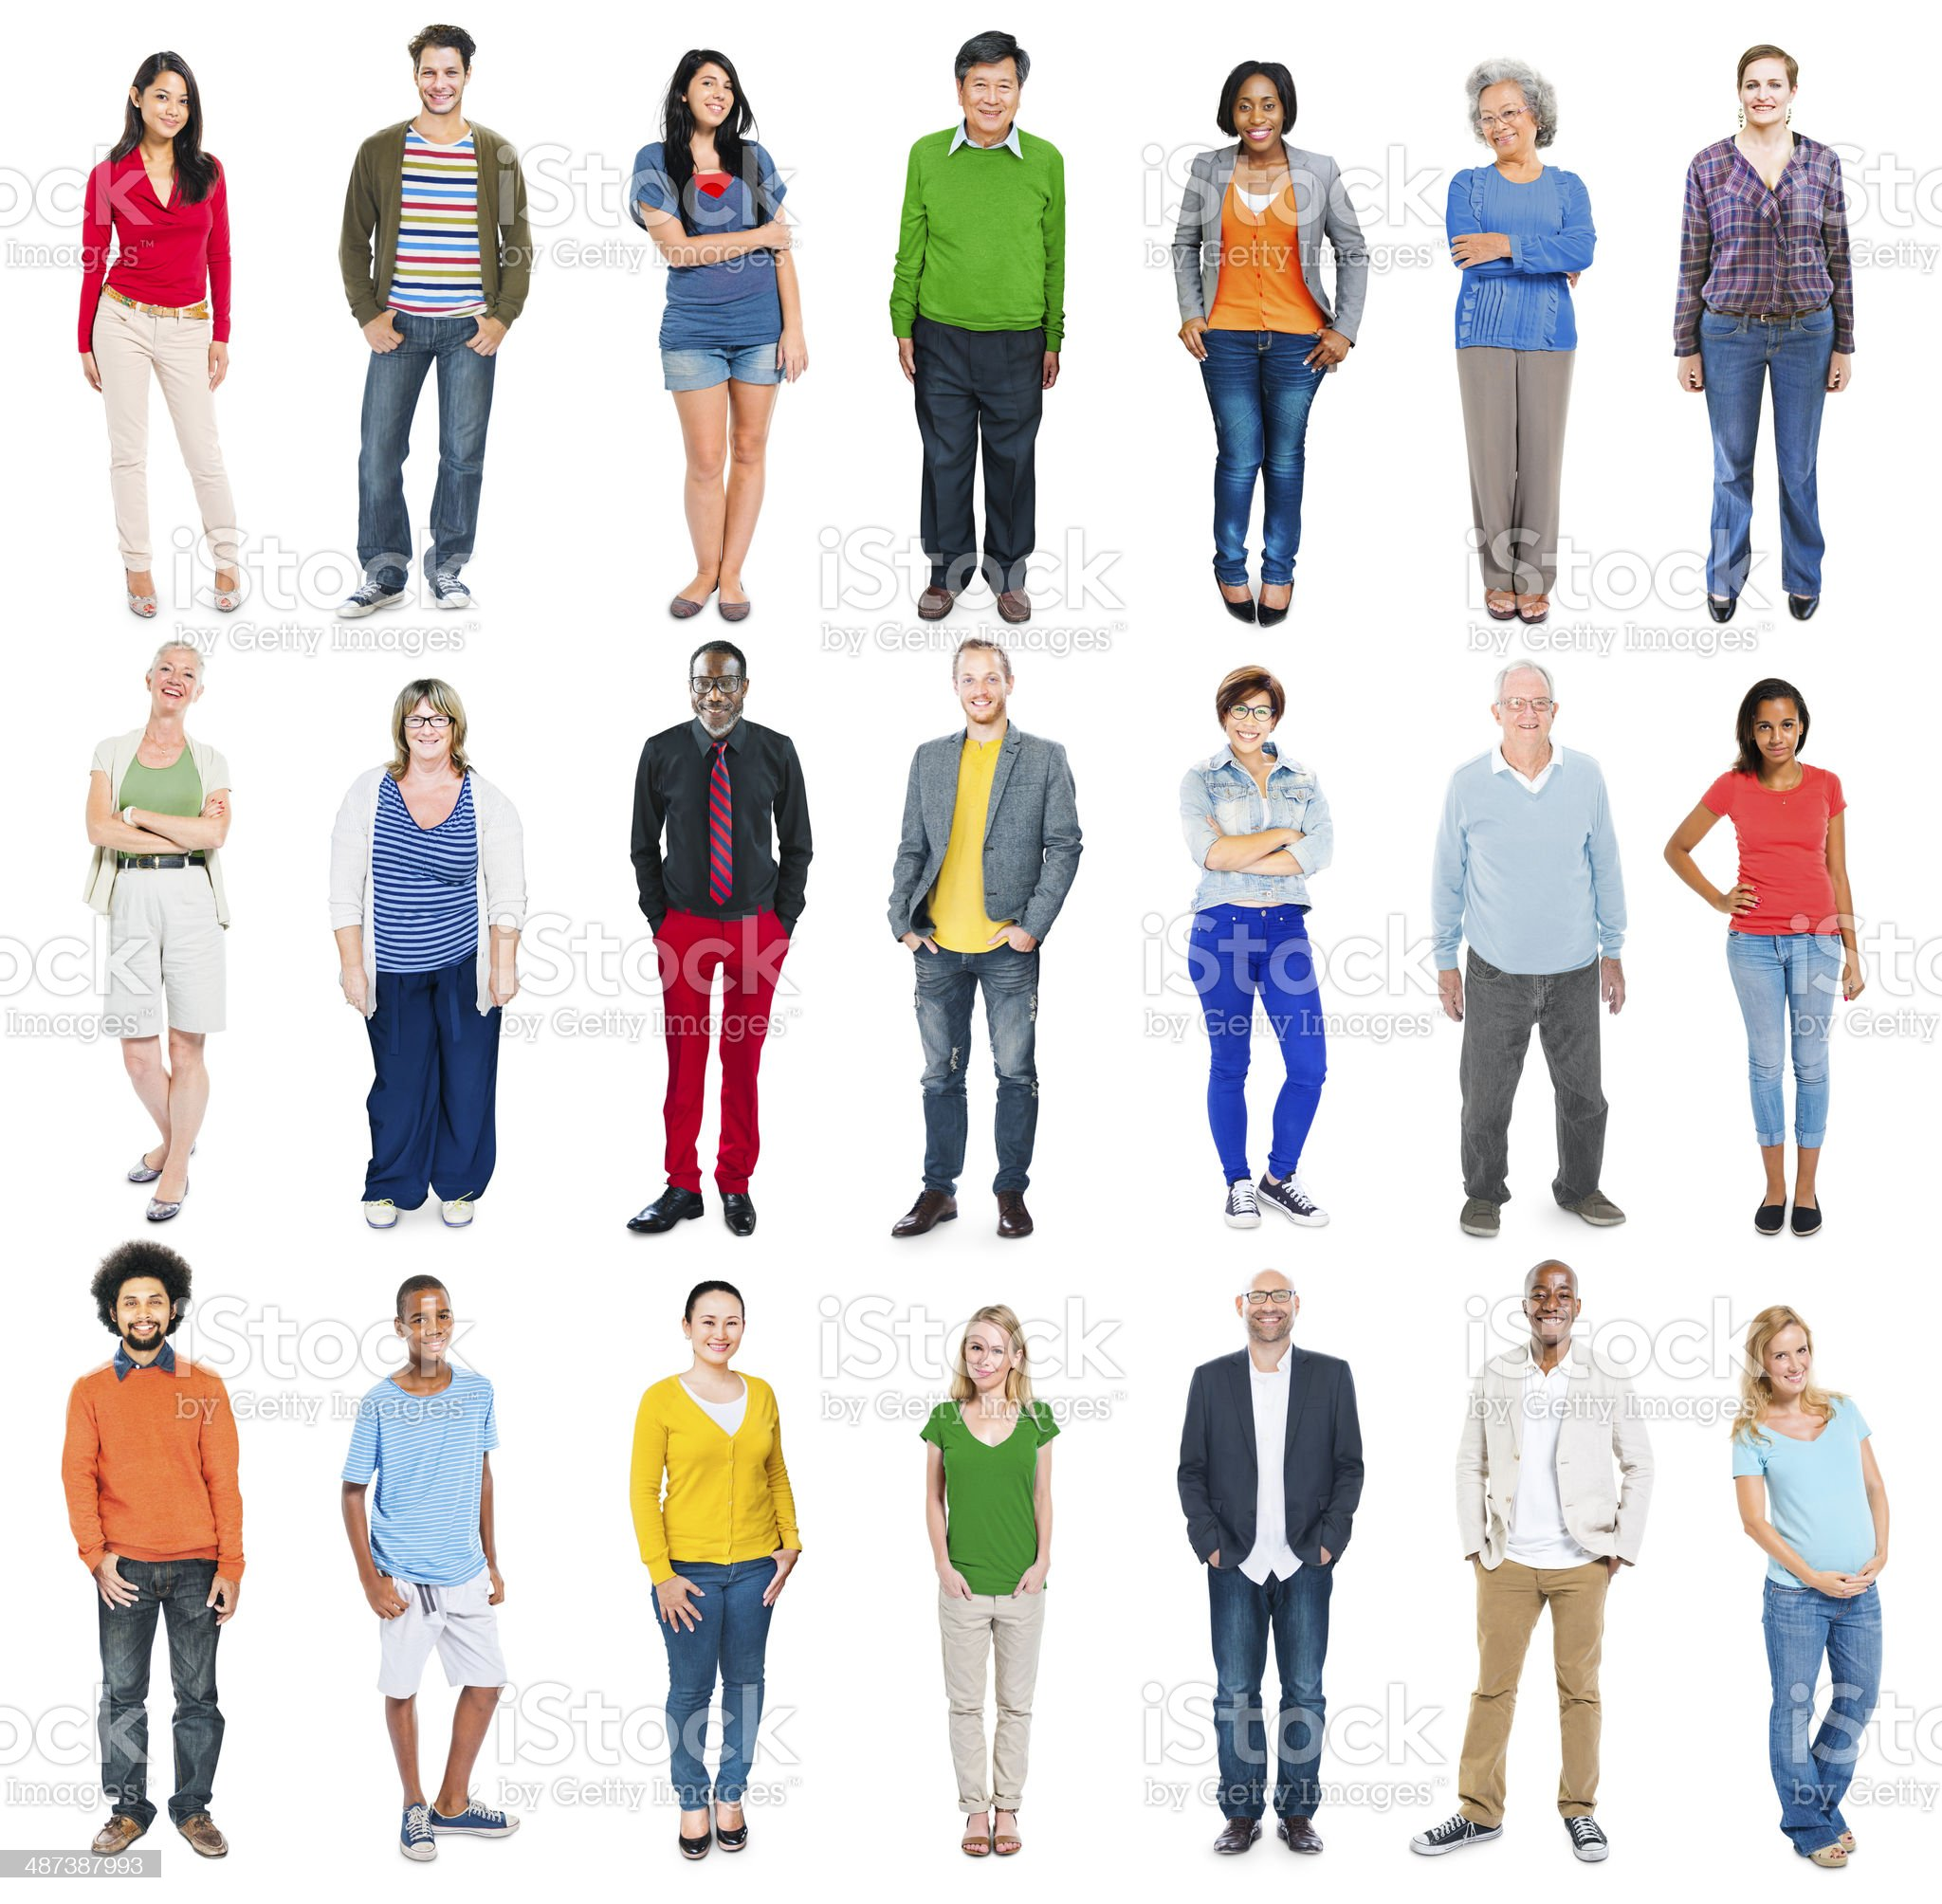 Group of Multiethnic Diverse Colorful People royalty-free stock photo